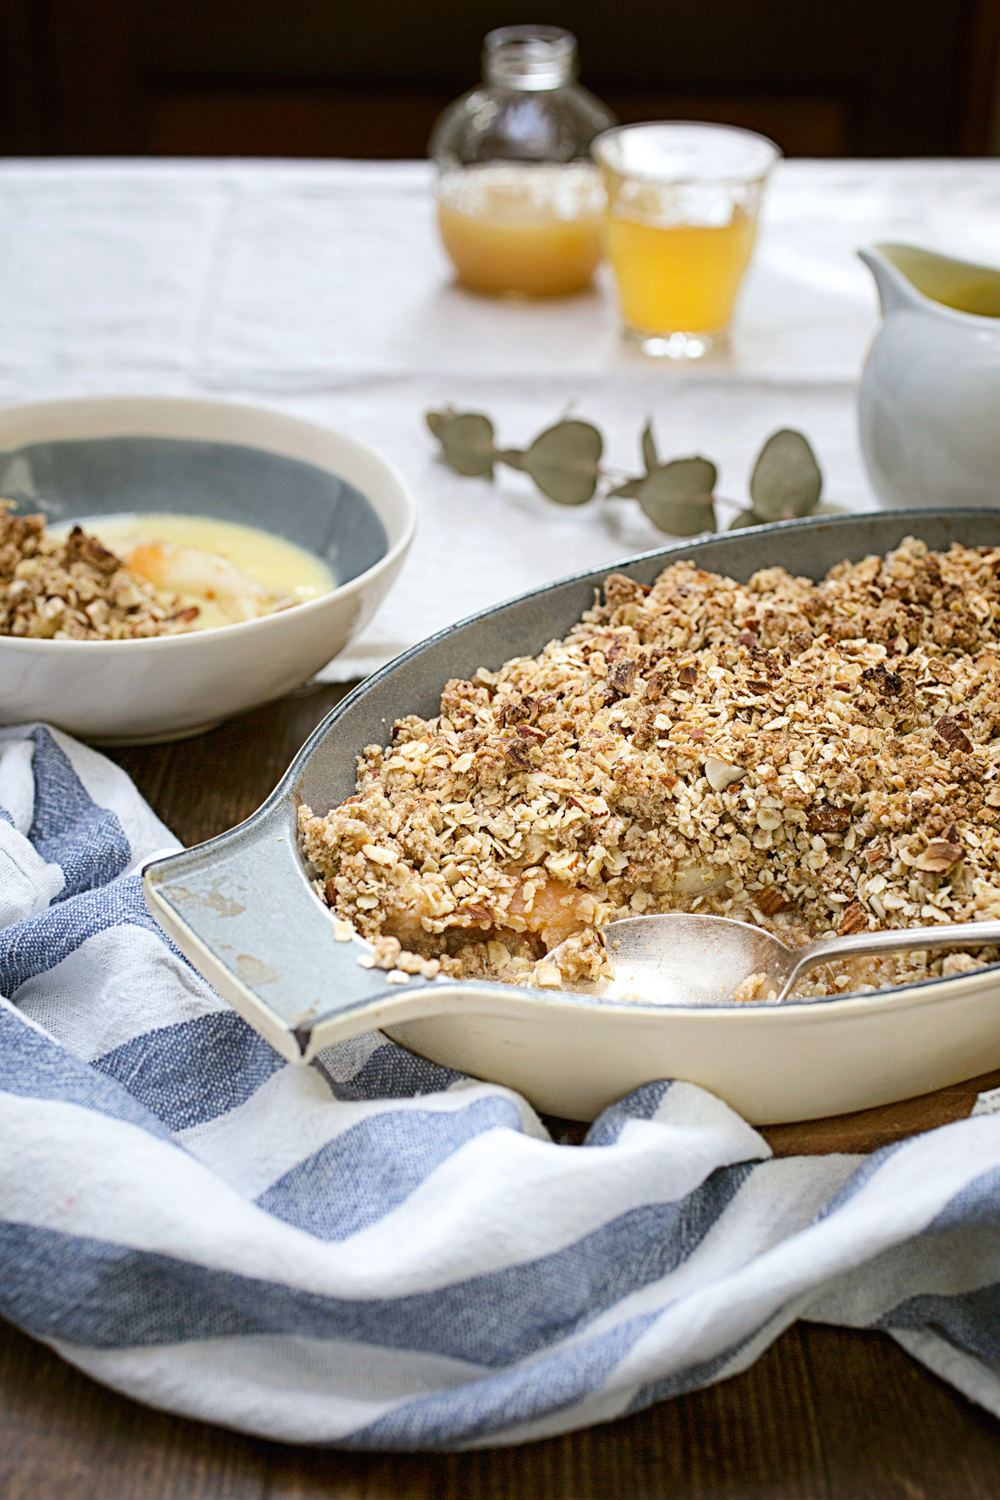 Nutty crumble and indulgent almond custard bring out the best in delicious poached pears and quince